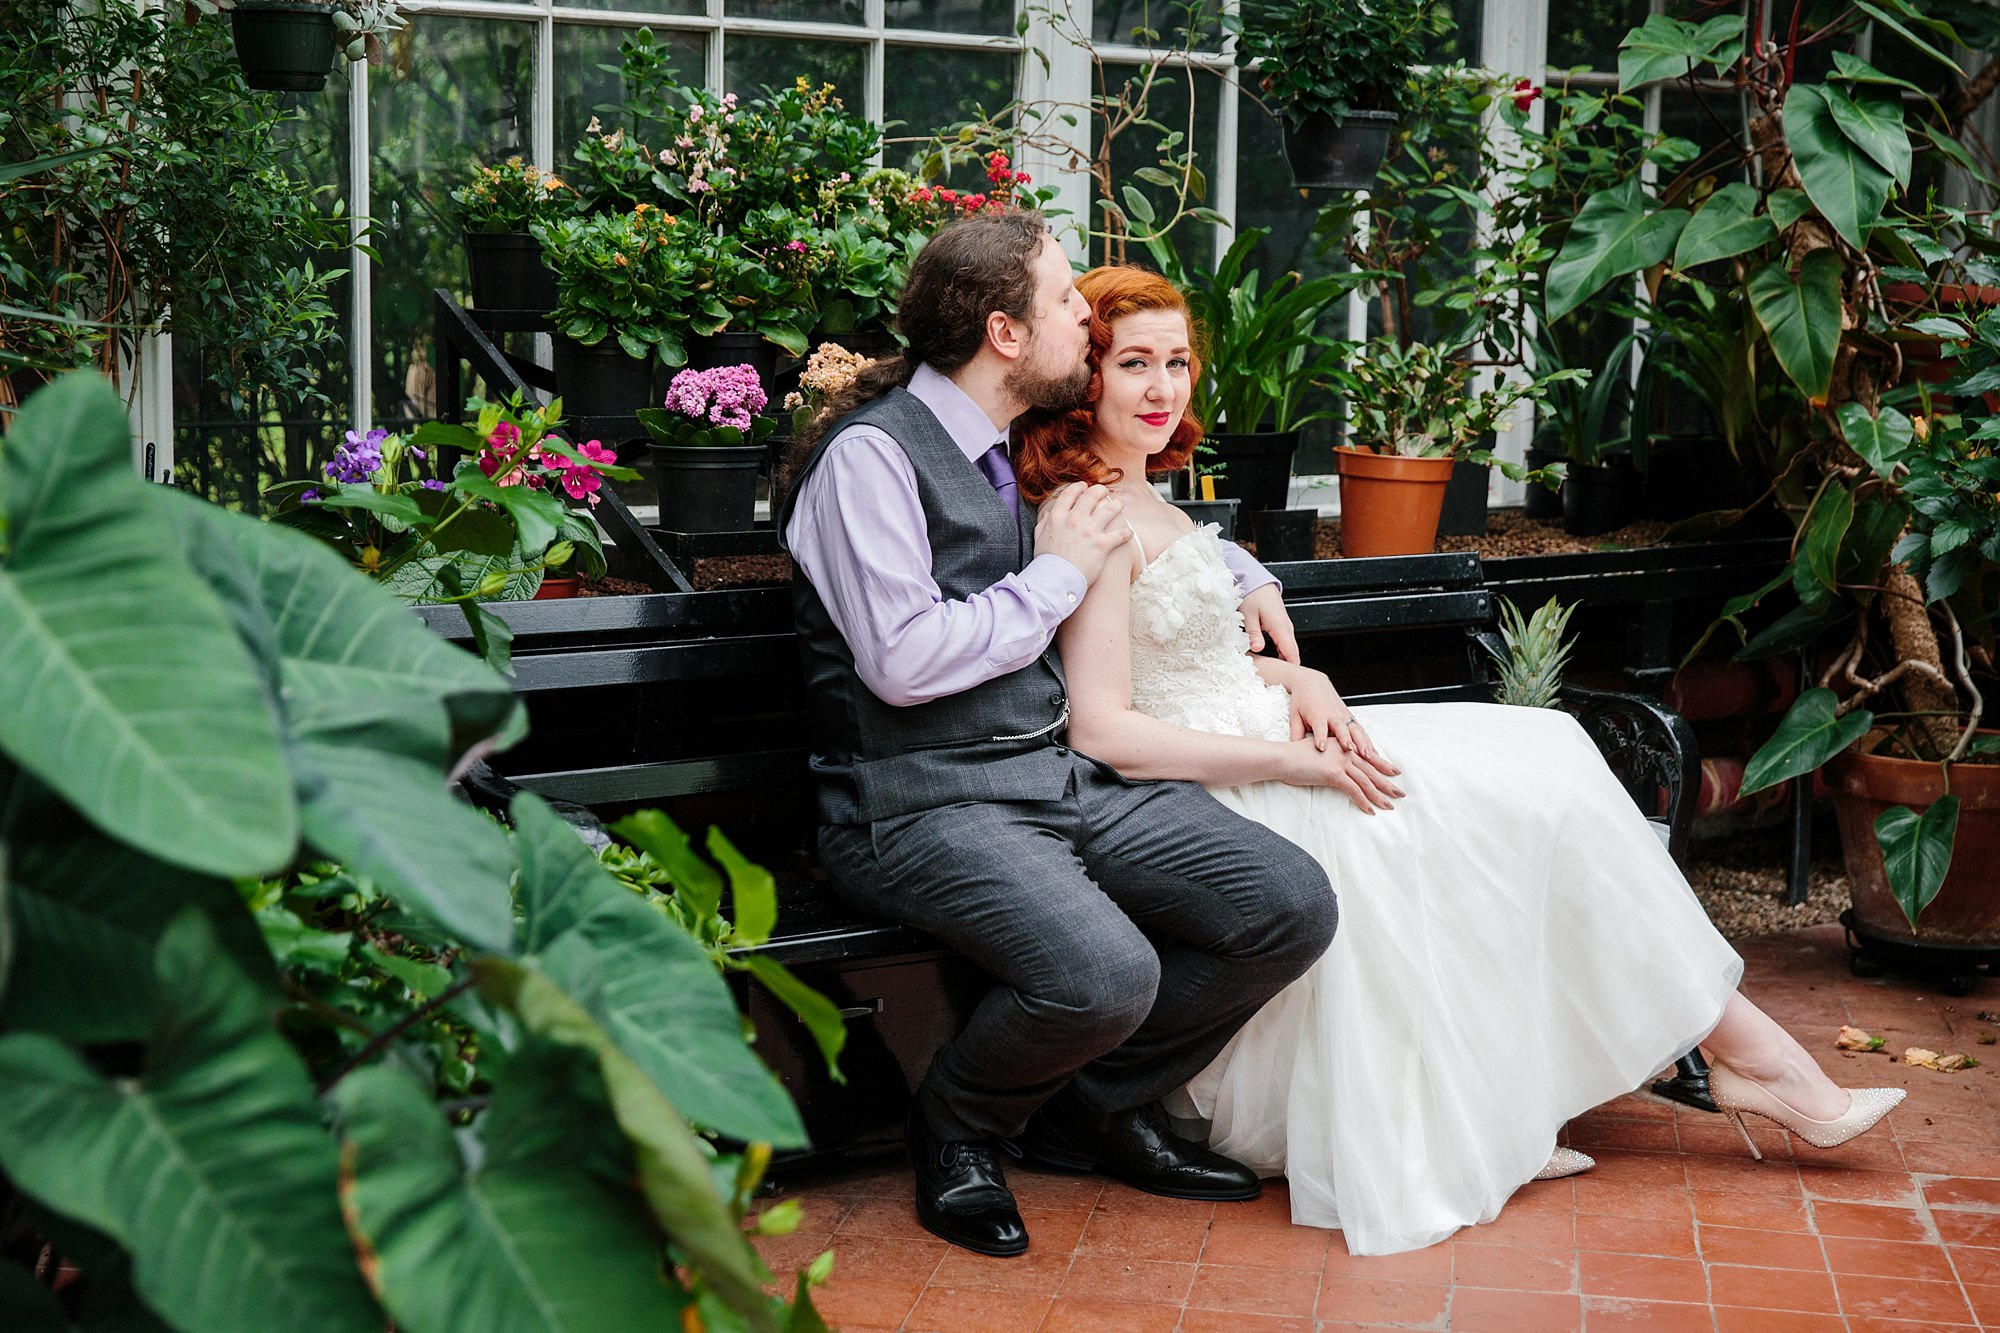 tropical wedding shoot portrait of groom and bride on bench in conservatory